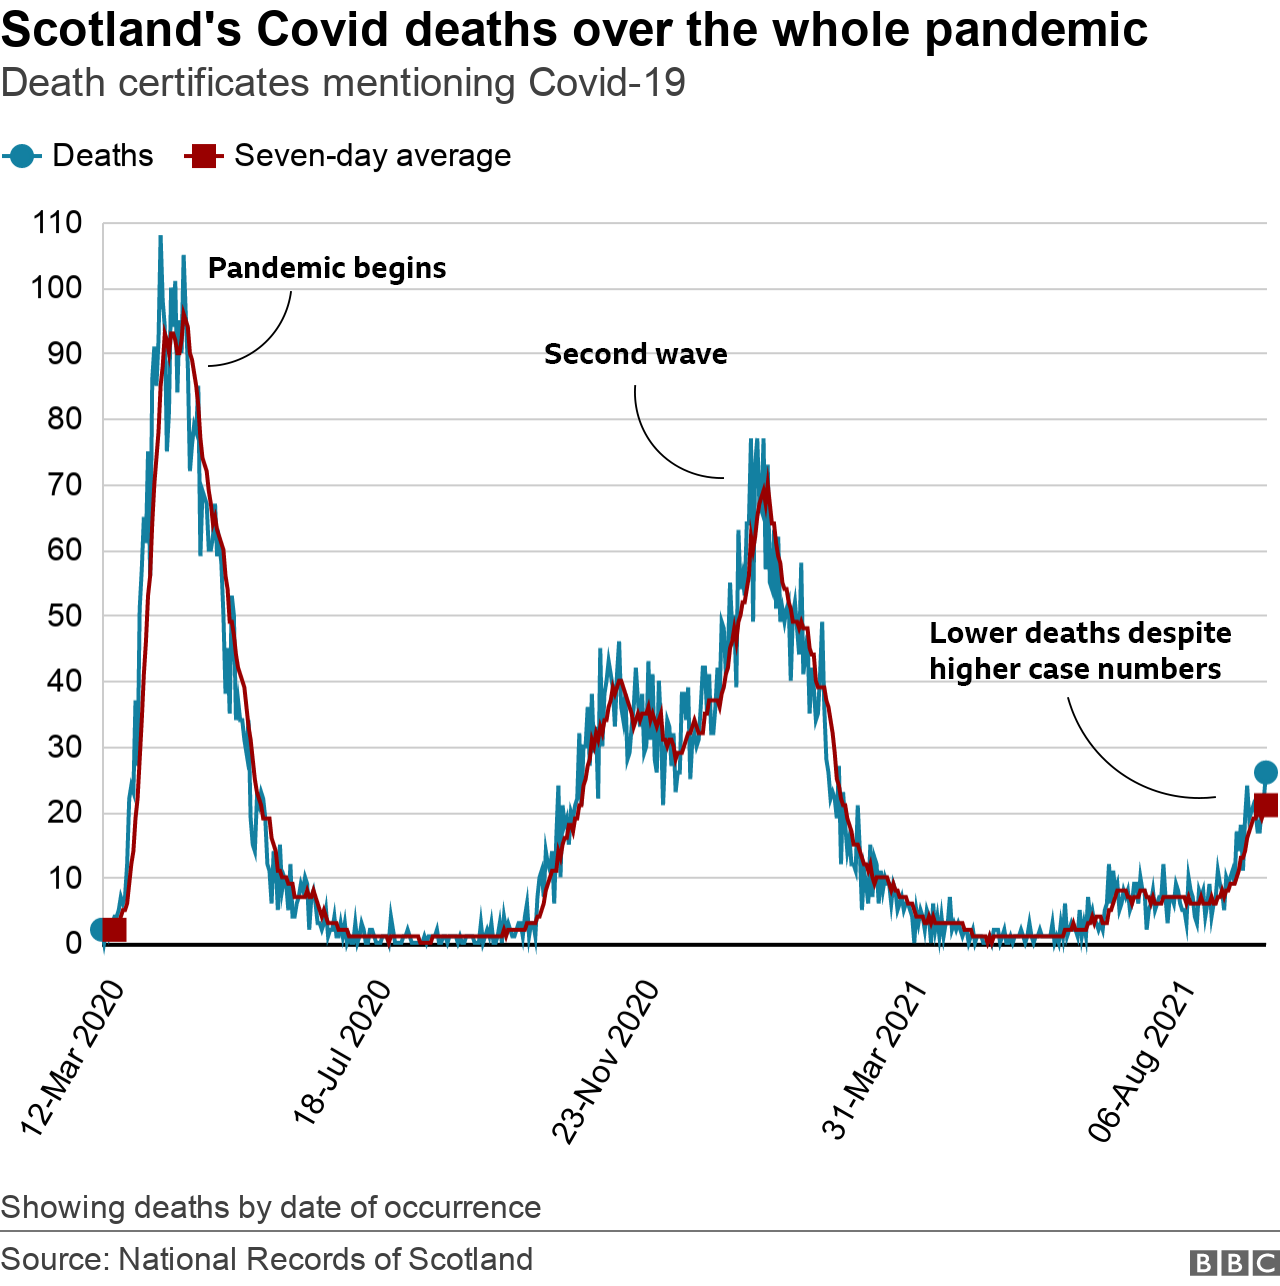 Deaths over whole pandemic